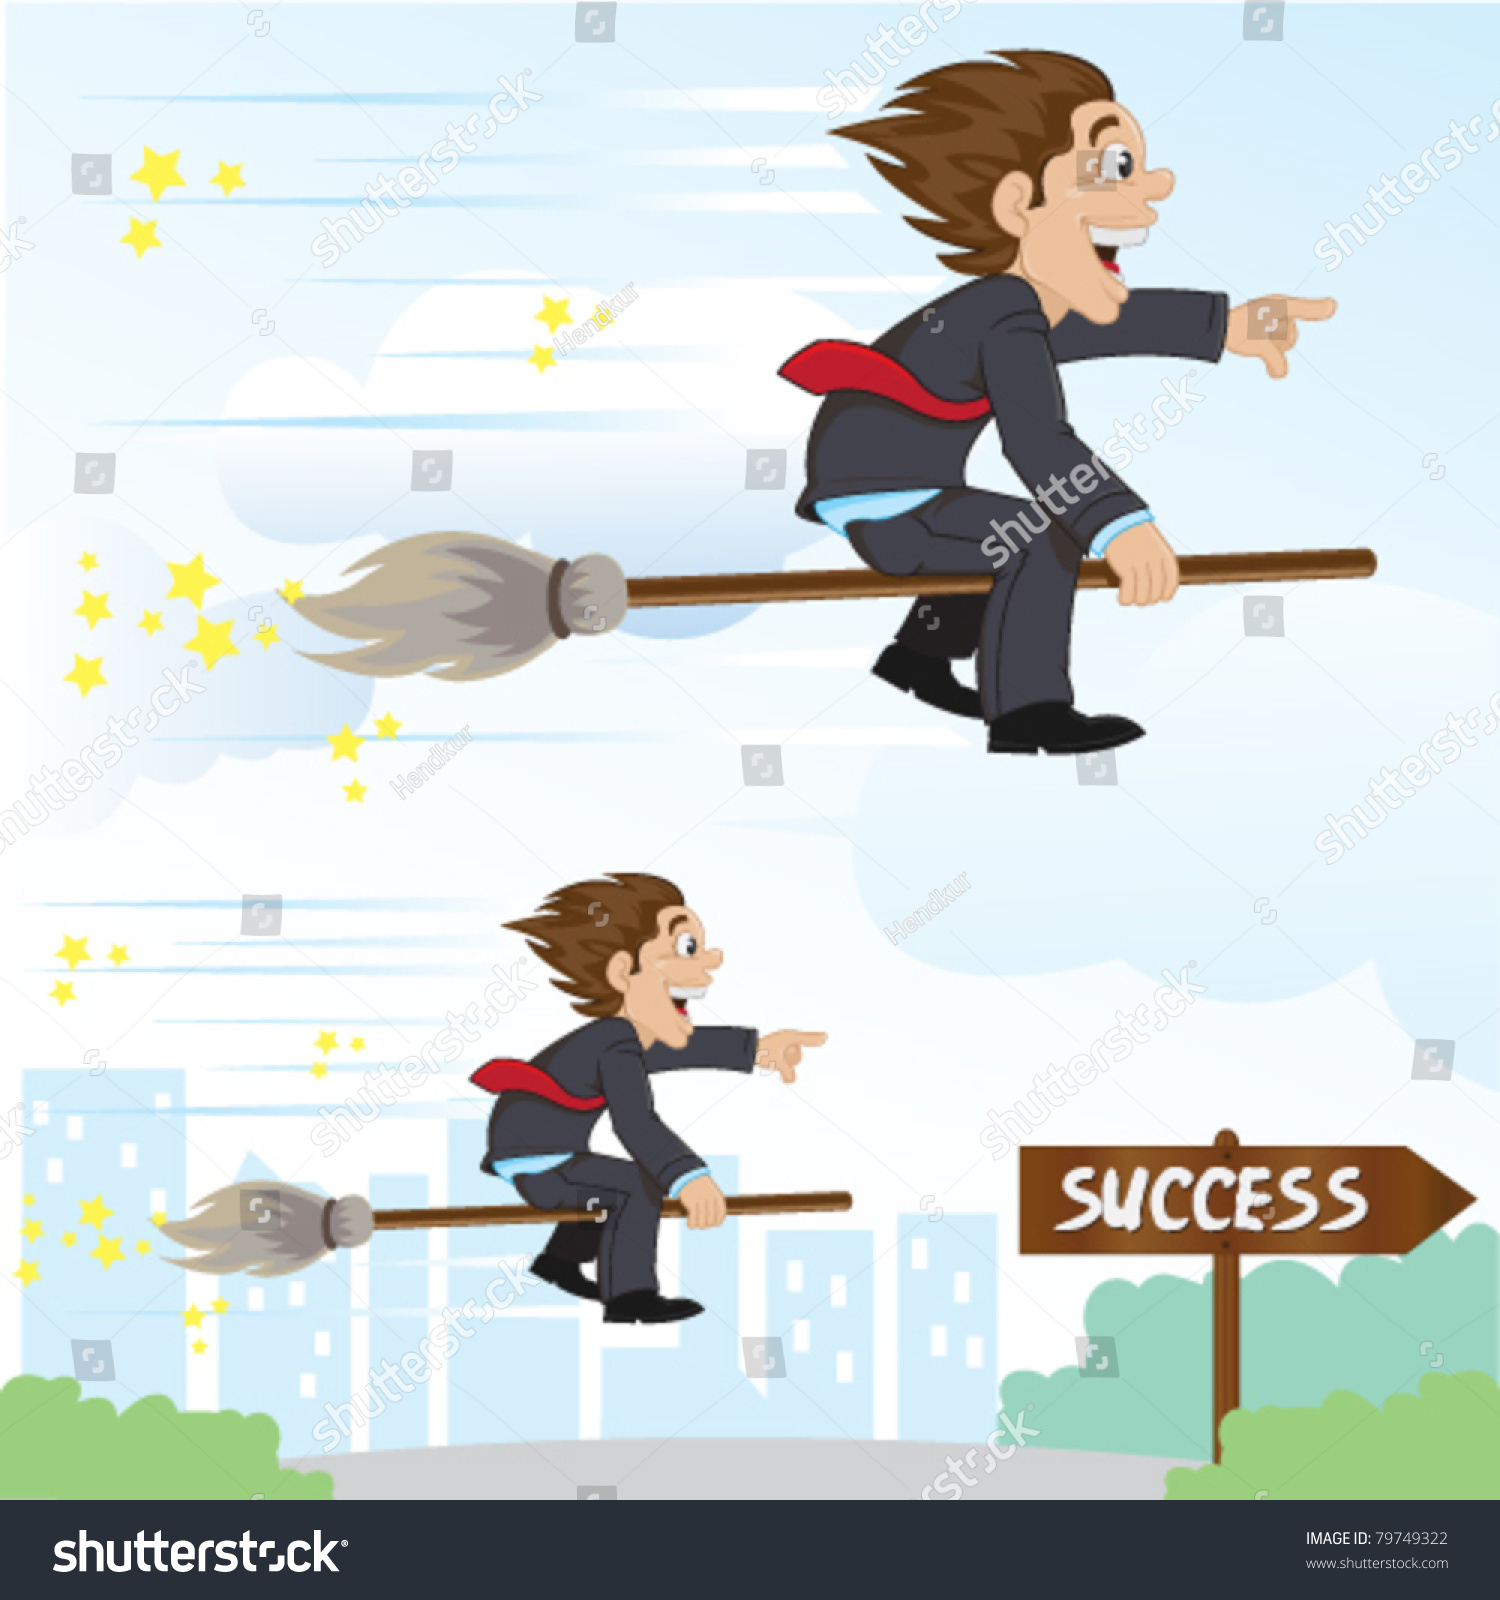 Funny Businessman Riding Magic Broom Success Stock Vector Royalty Free 79749322